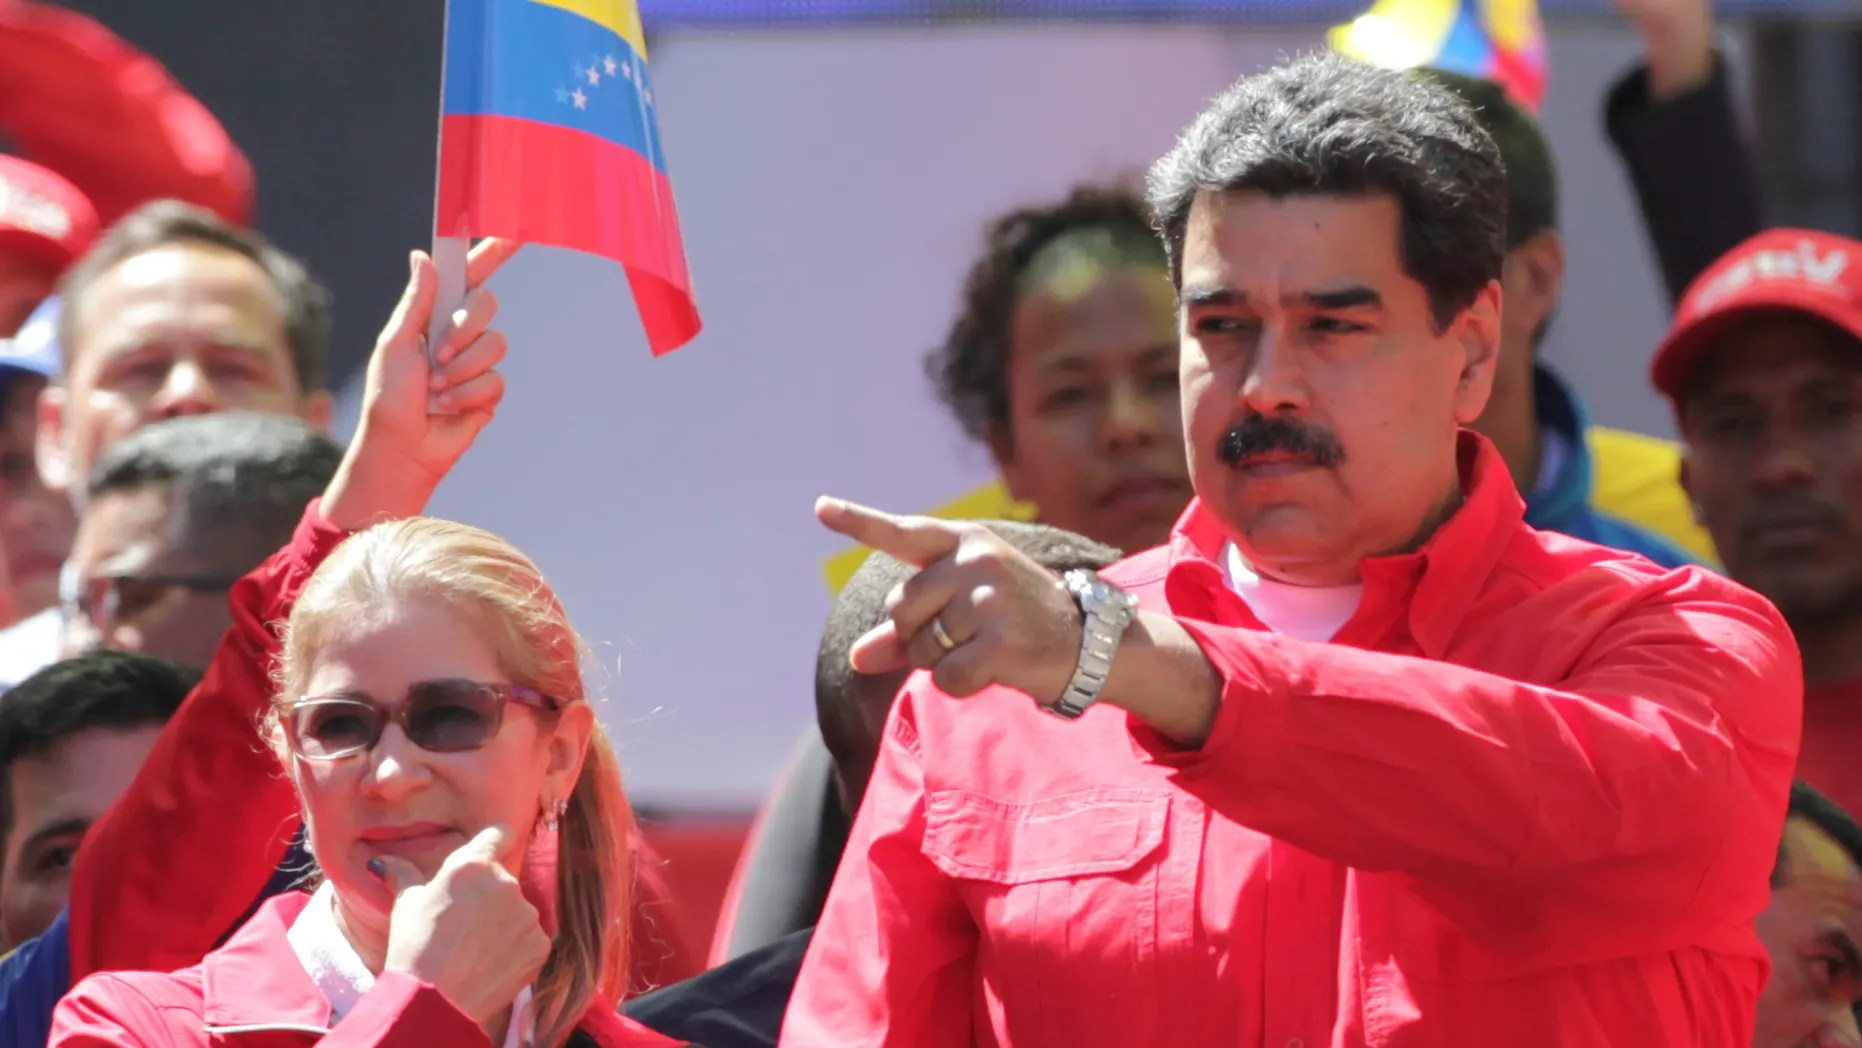 Venezuela's President Nicolas Maduro and first lady Cilia Flores attend a pro-government rally in Caracas, Venezuela, Saturday, Feb. 23, 2019. Maduro has closed Venezuela's borders and calls humanitarian aid destined for Venezuela as part of a U.S.-led coup. (Associated Press)